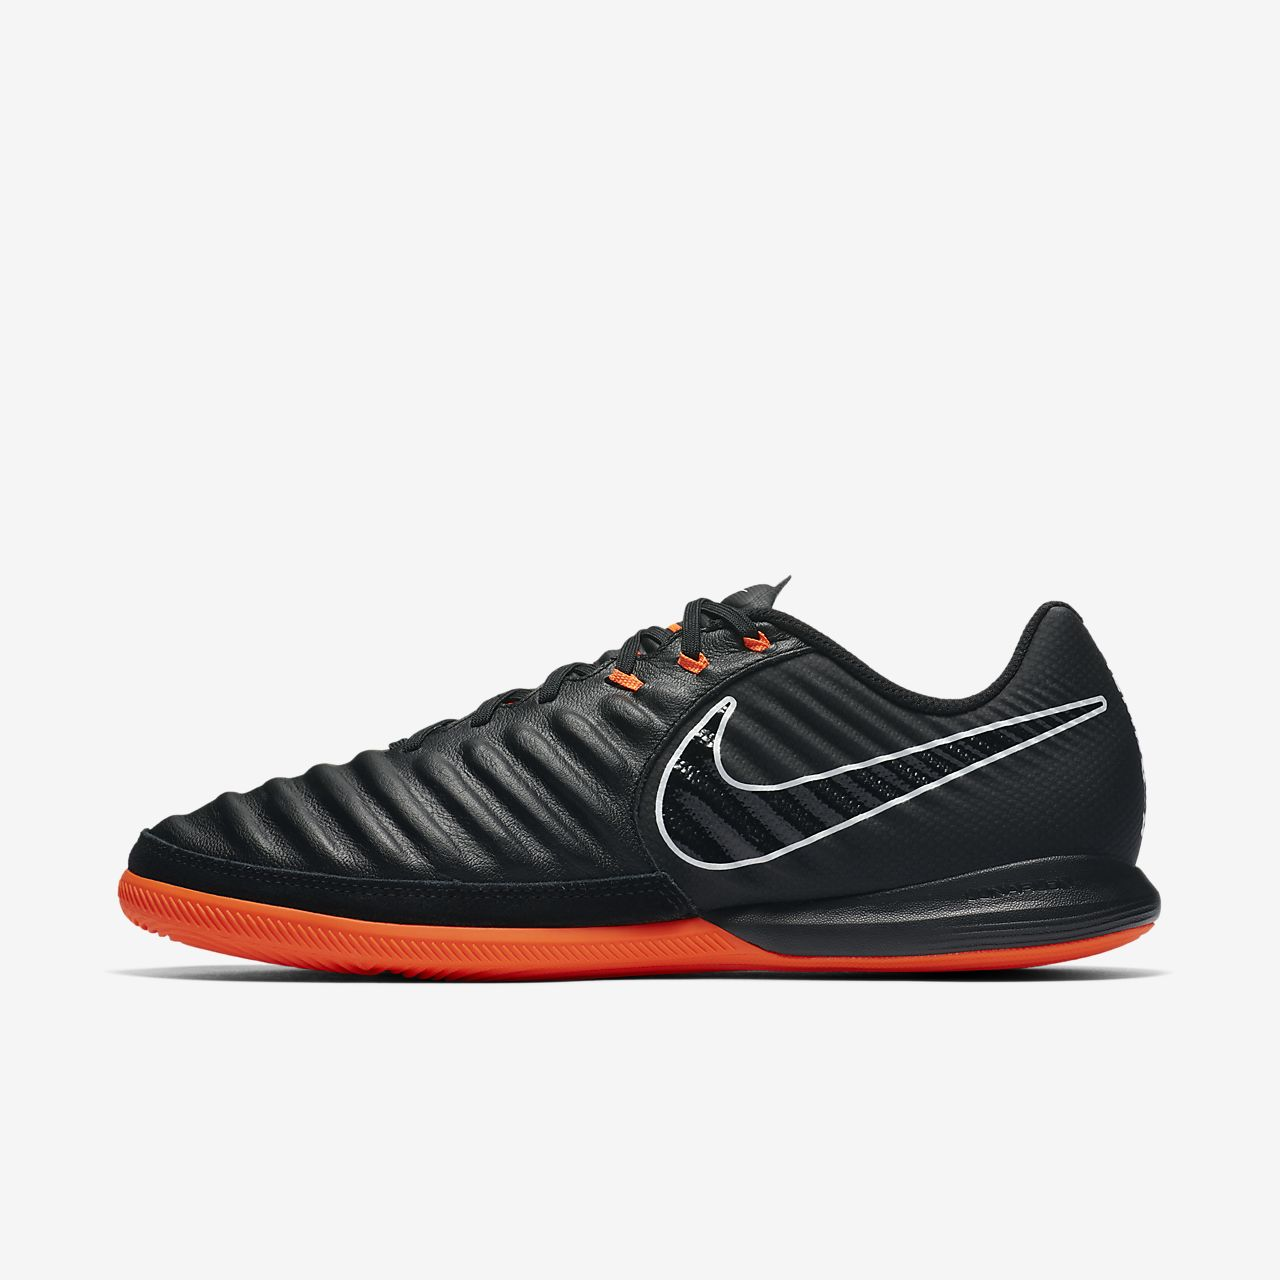 Nike TiempoX Lunar Legend VII Pro IC Black Black Total Orange AH7246080